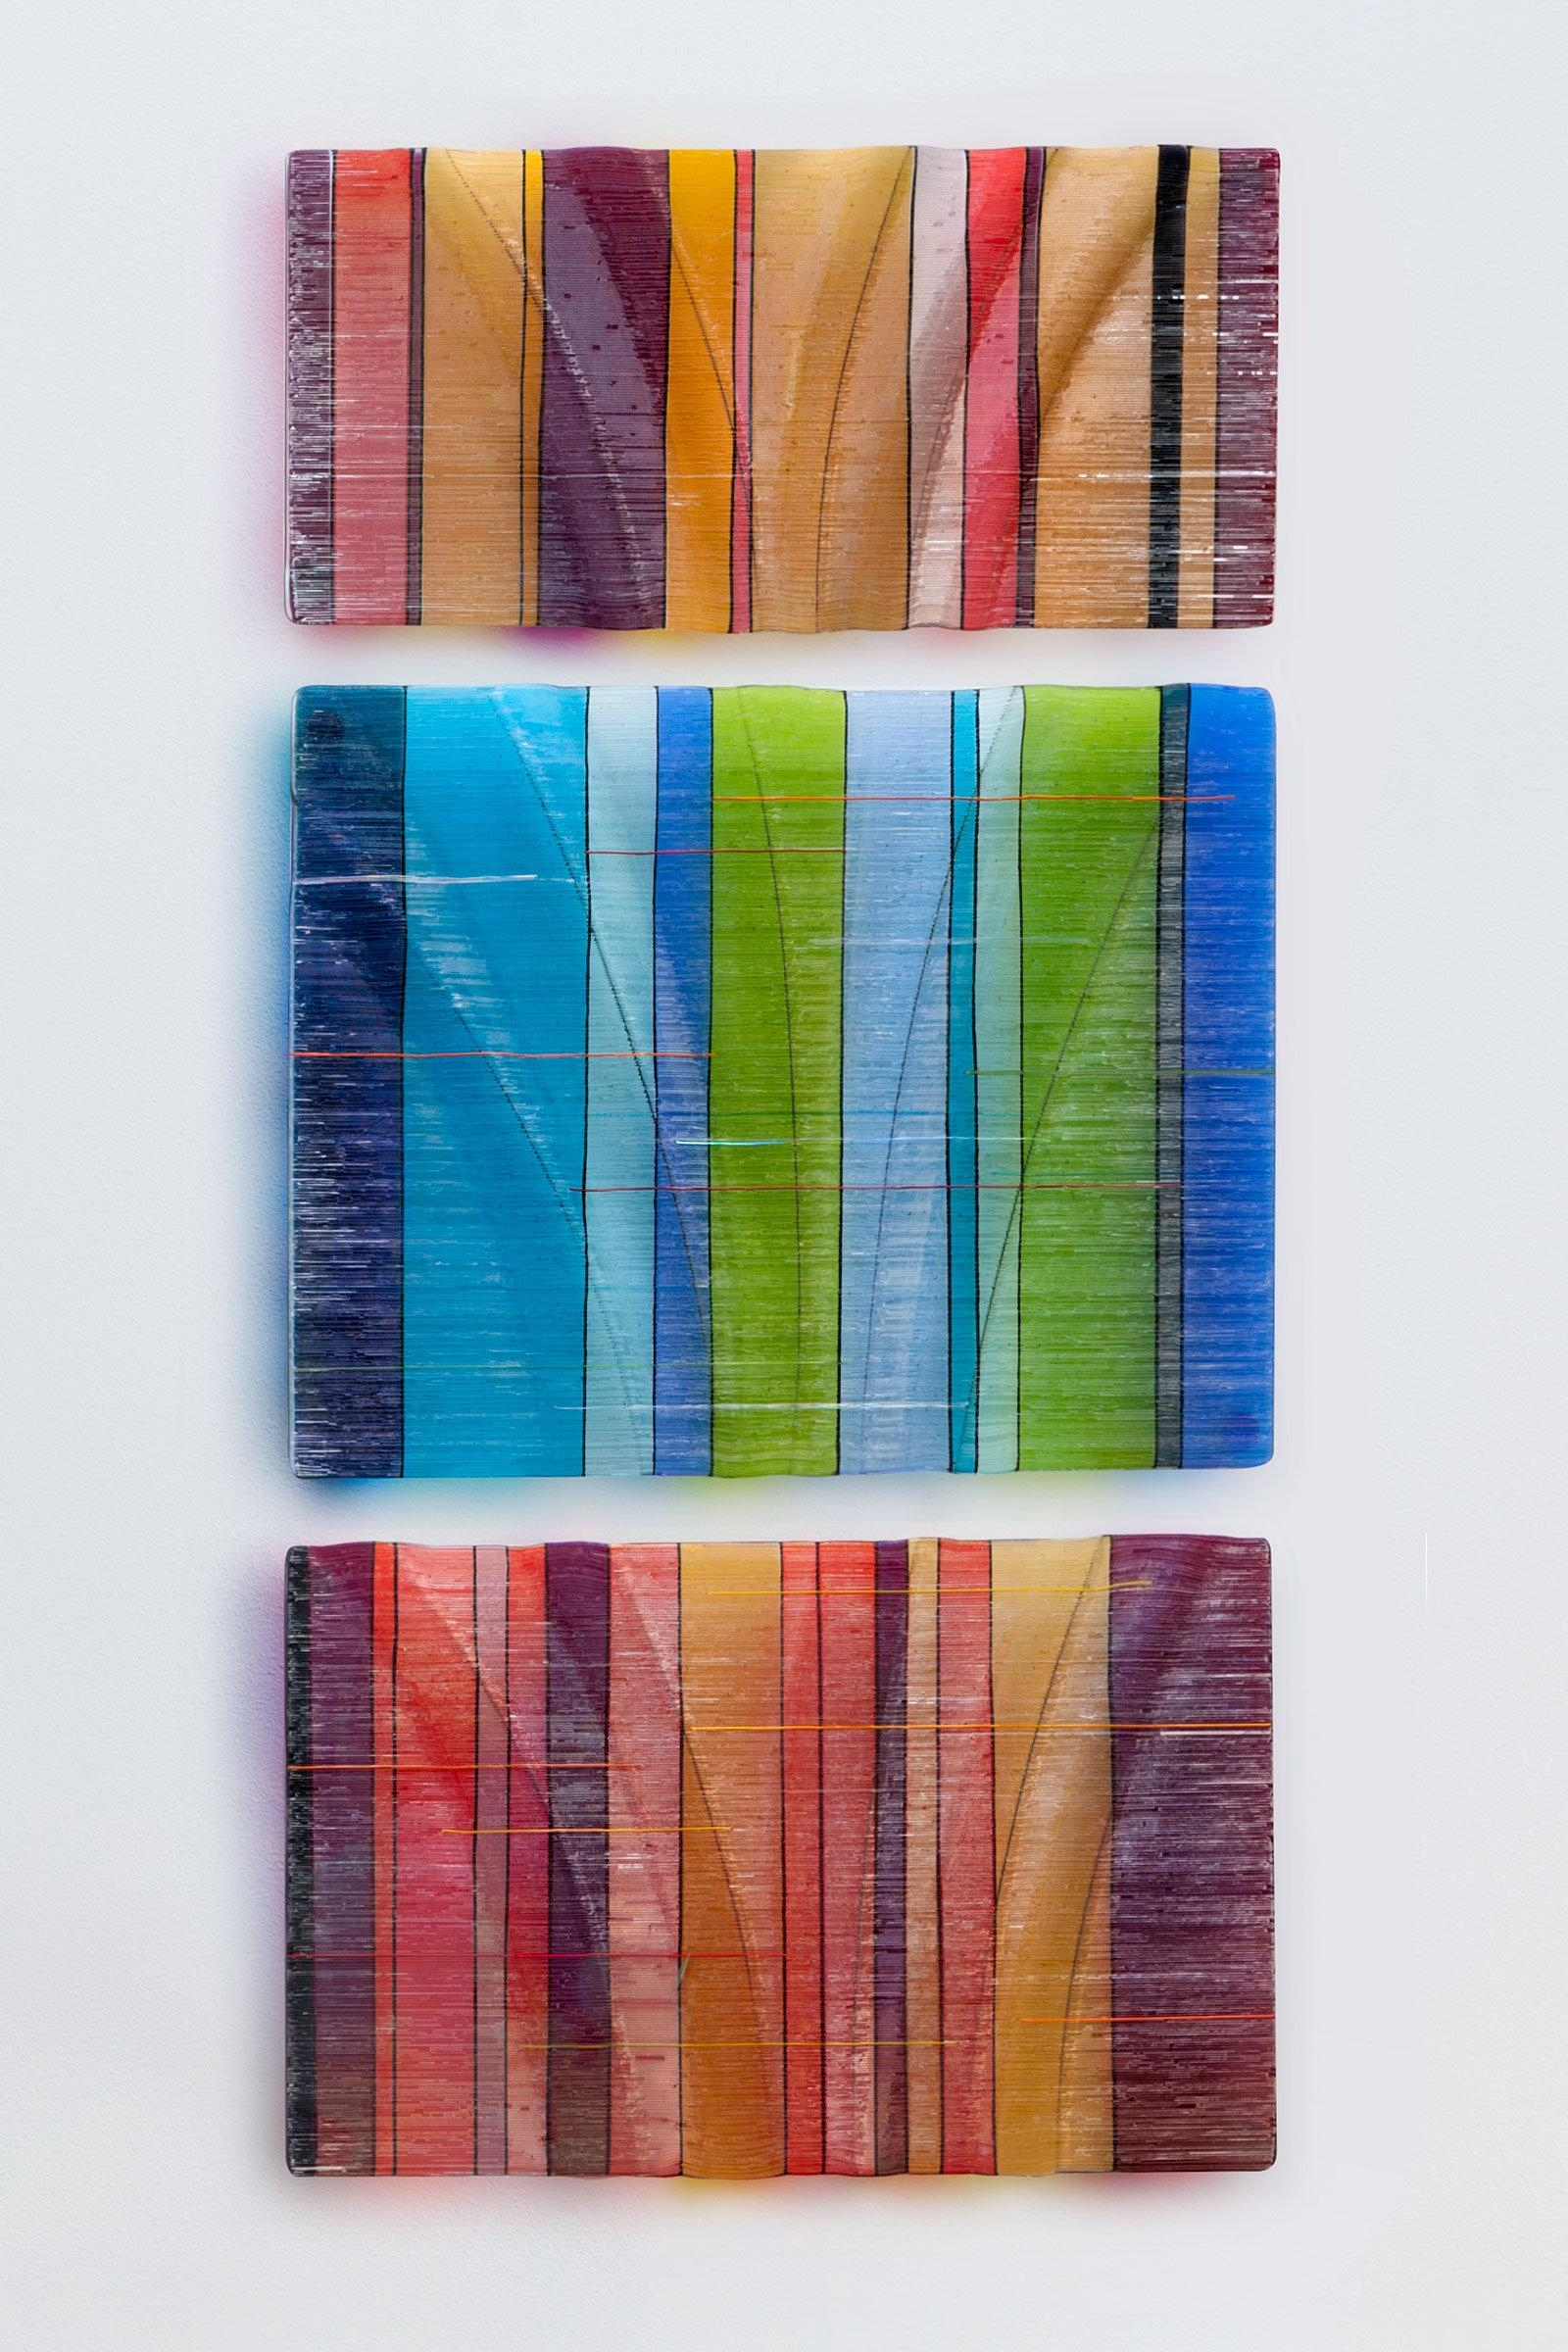 Artisanal Chocolates | Artful Home Regarding Fused Glass Wall Art (Image 7 of 20)